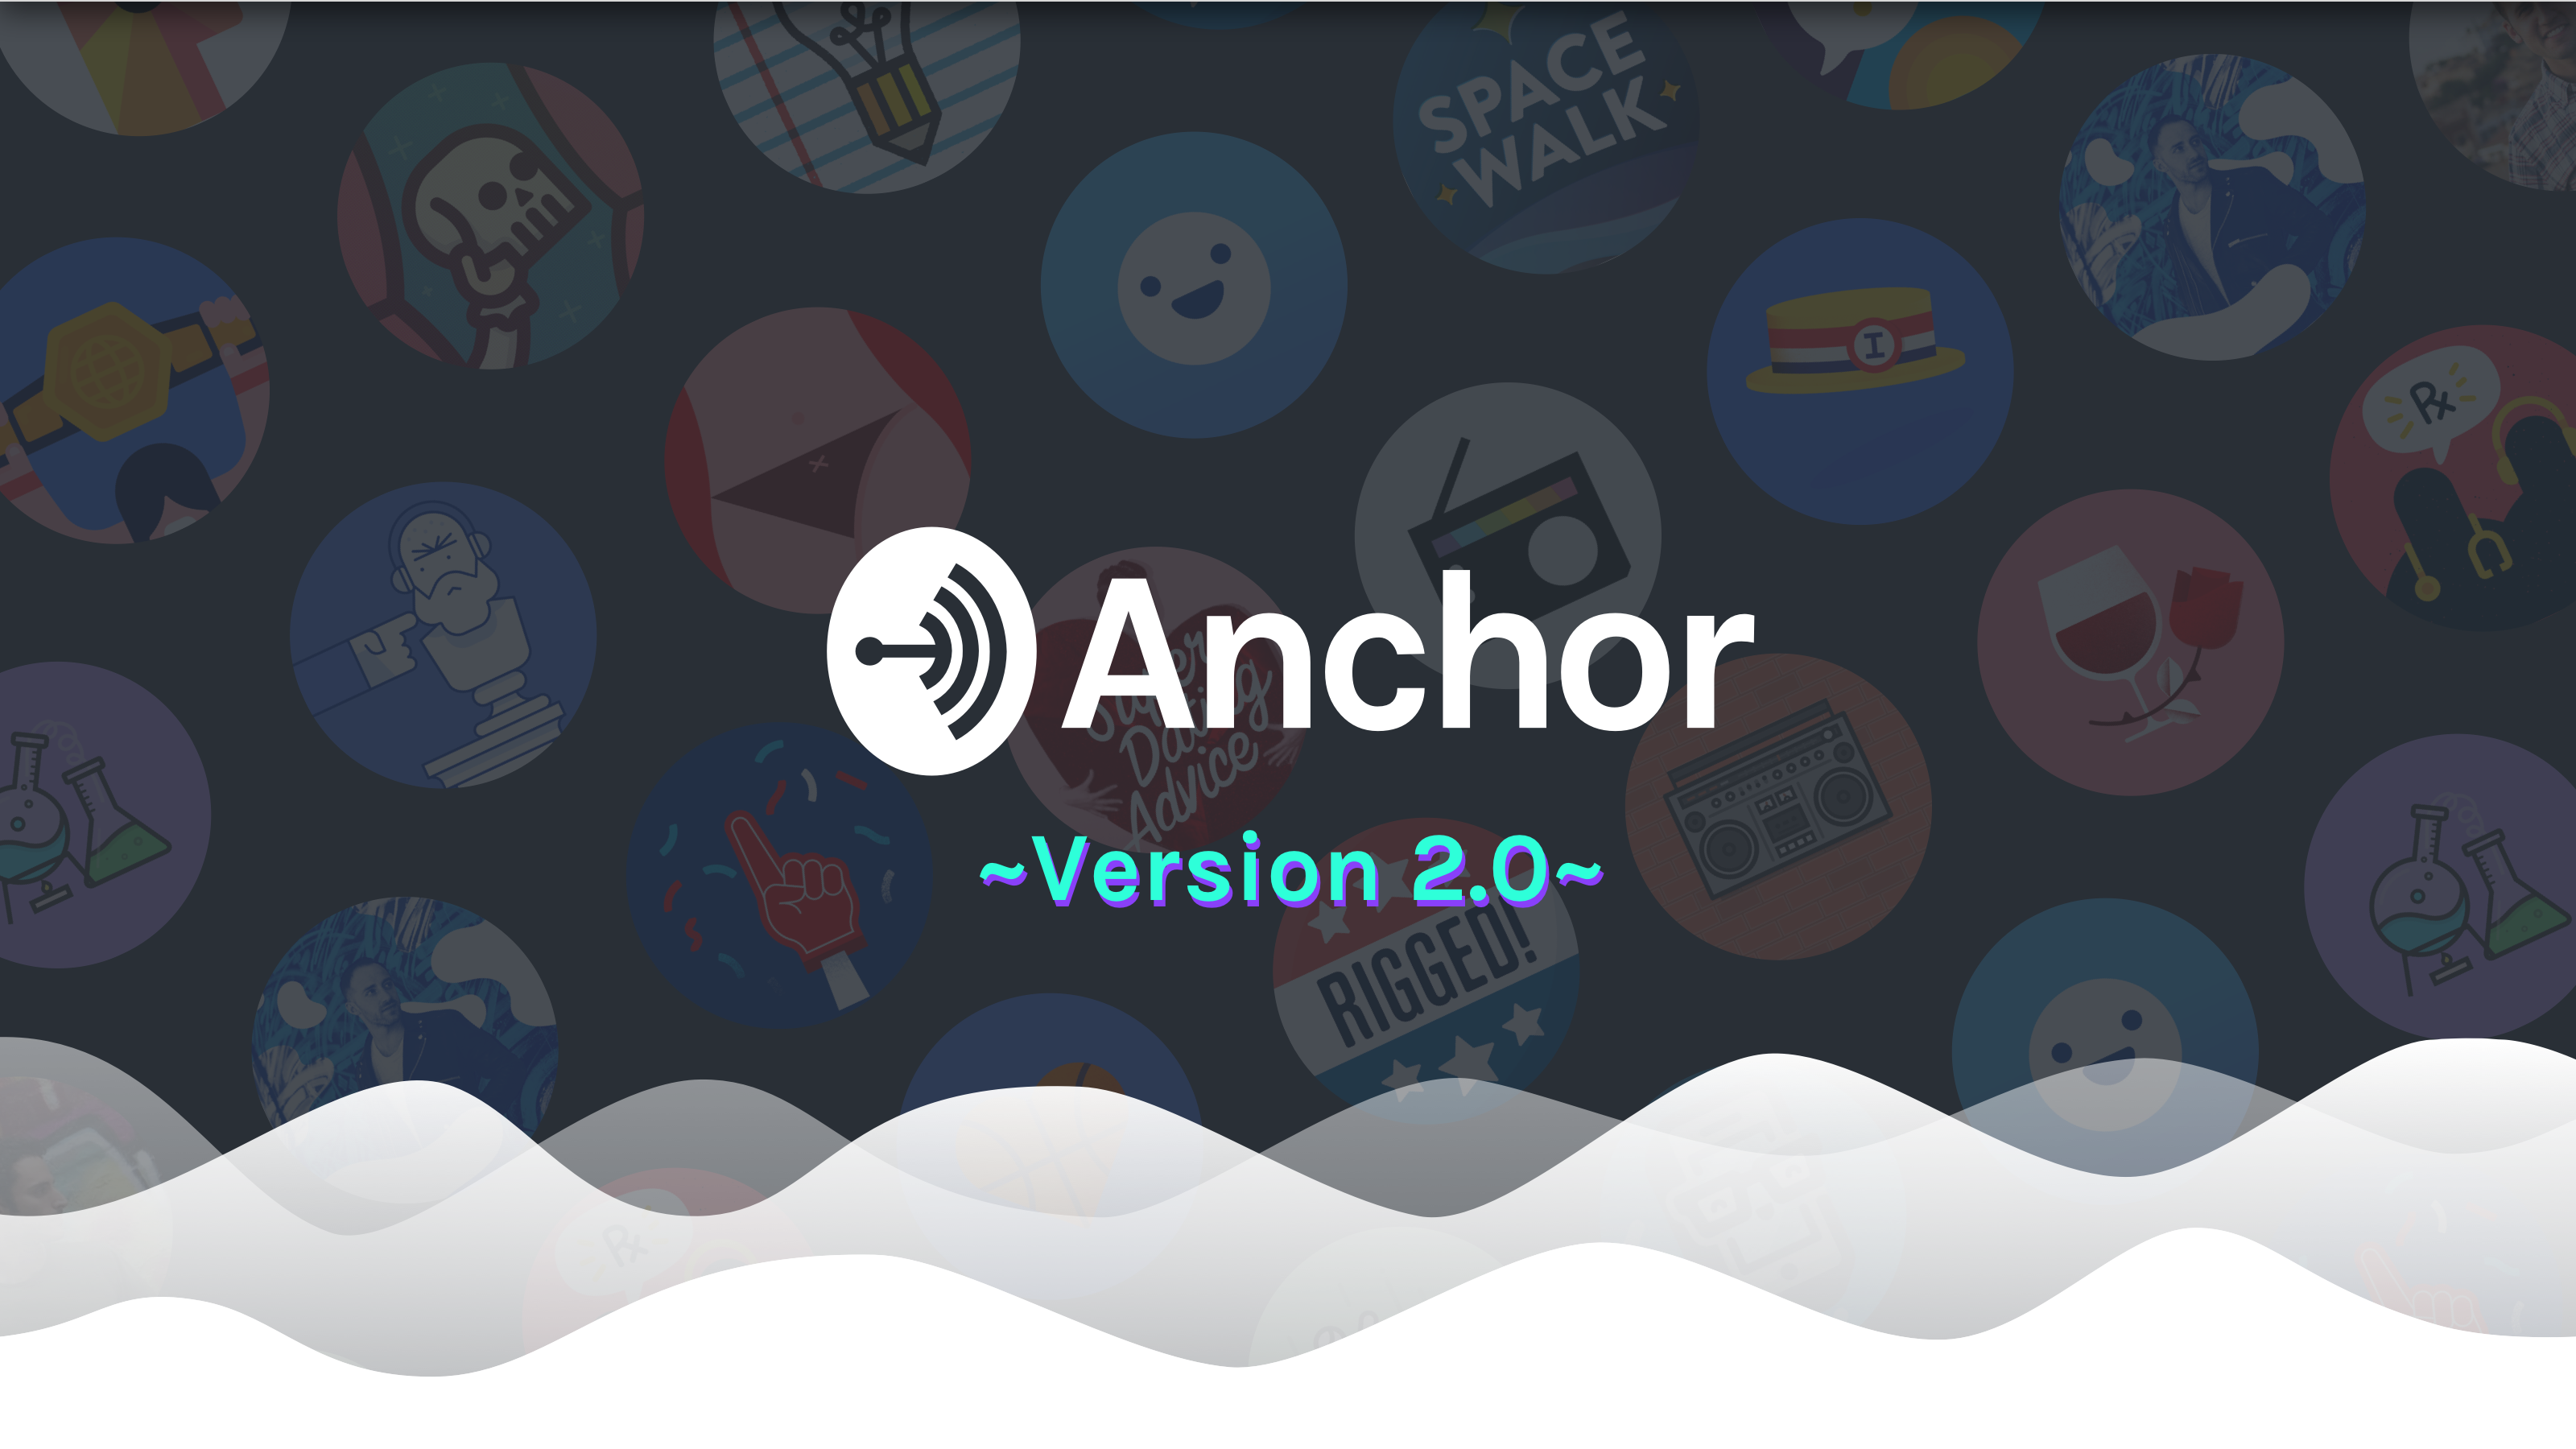 Reinventing radio with Anchor 2 0 and a new round of funding led by